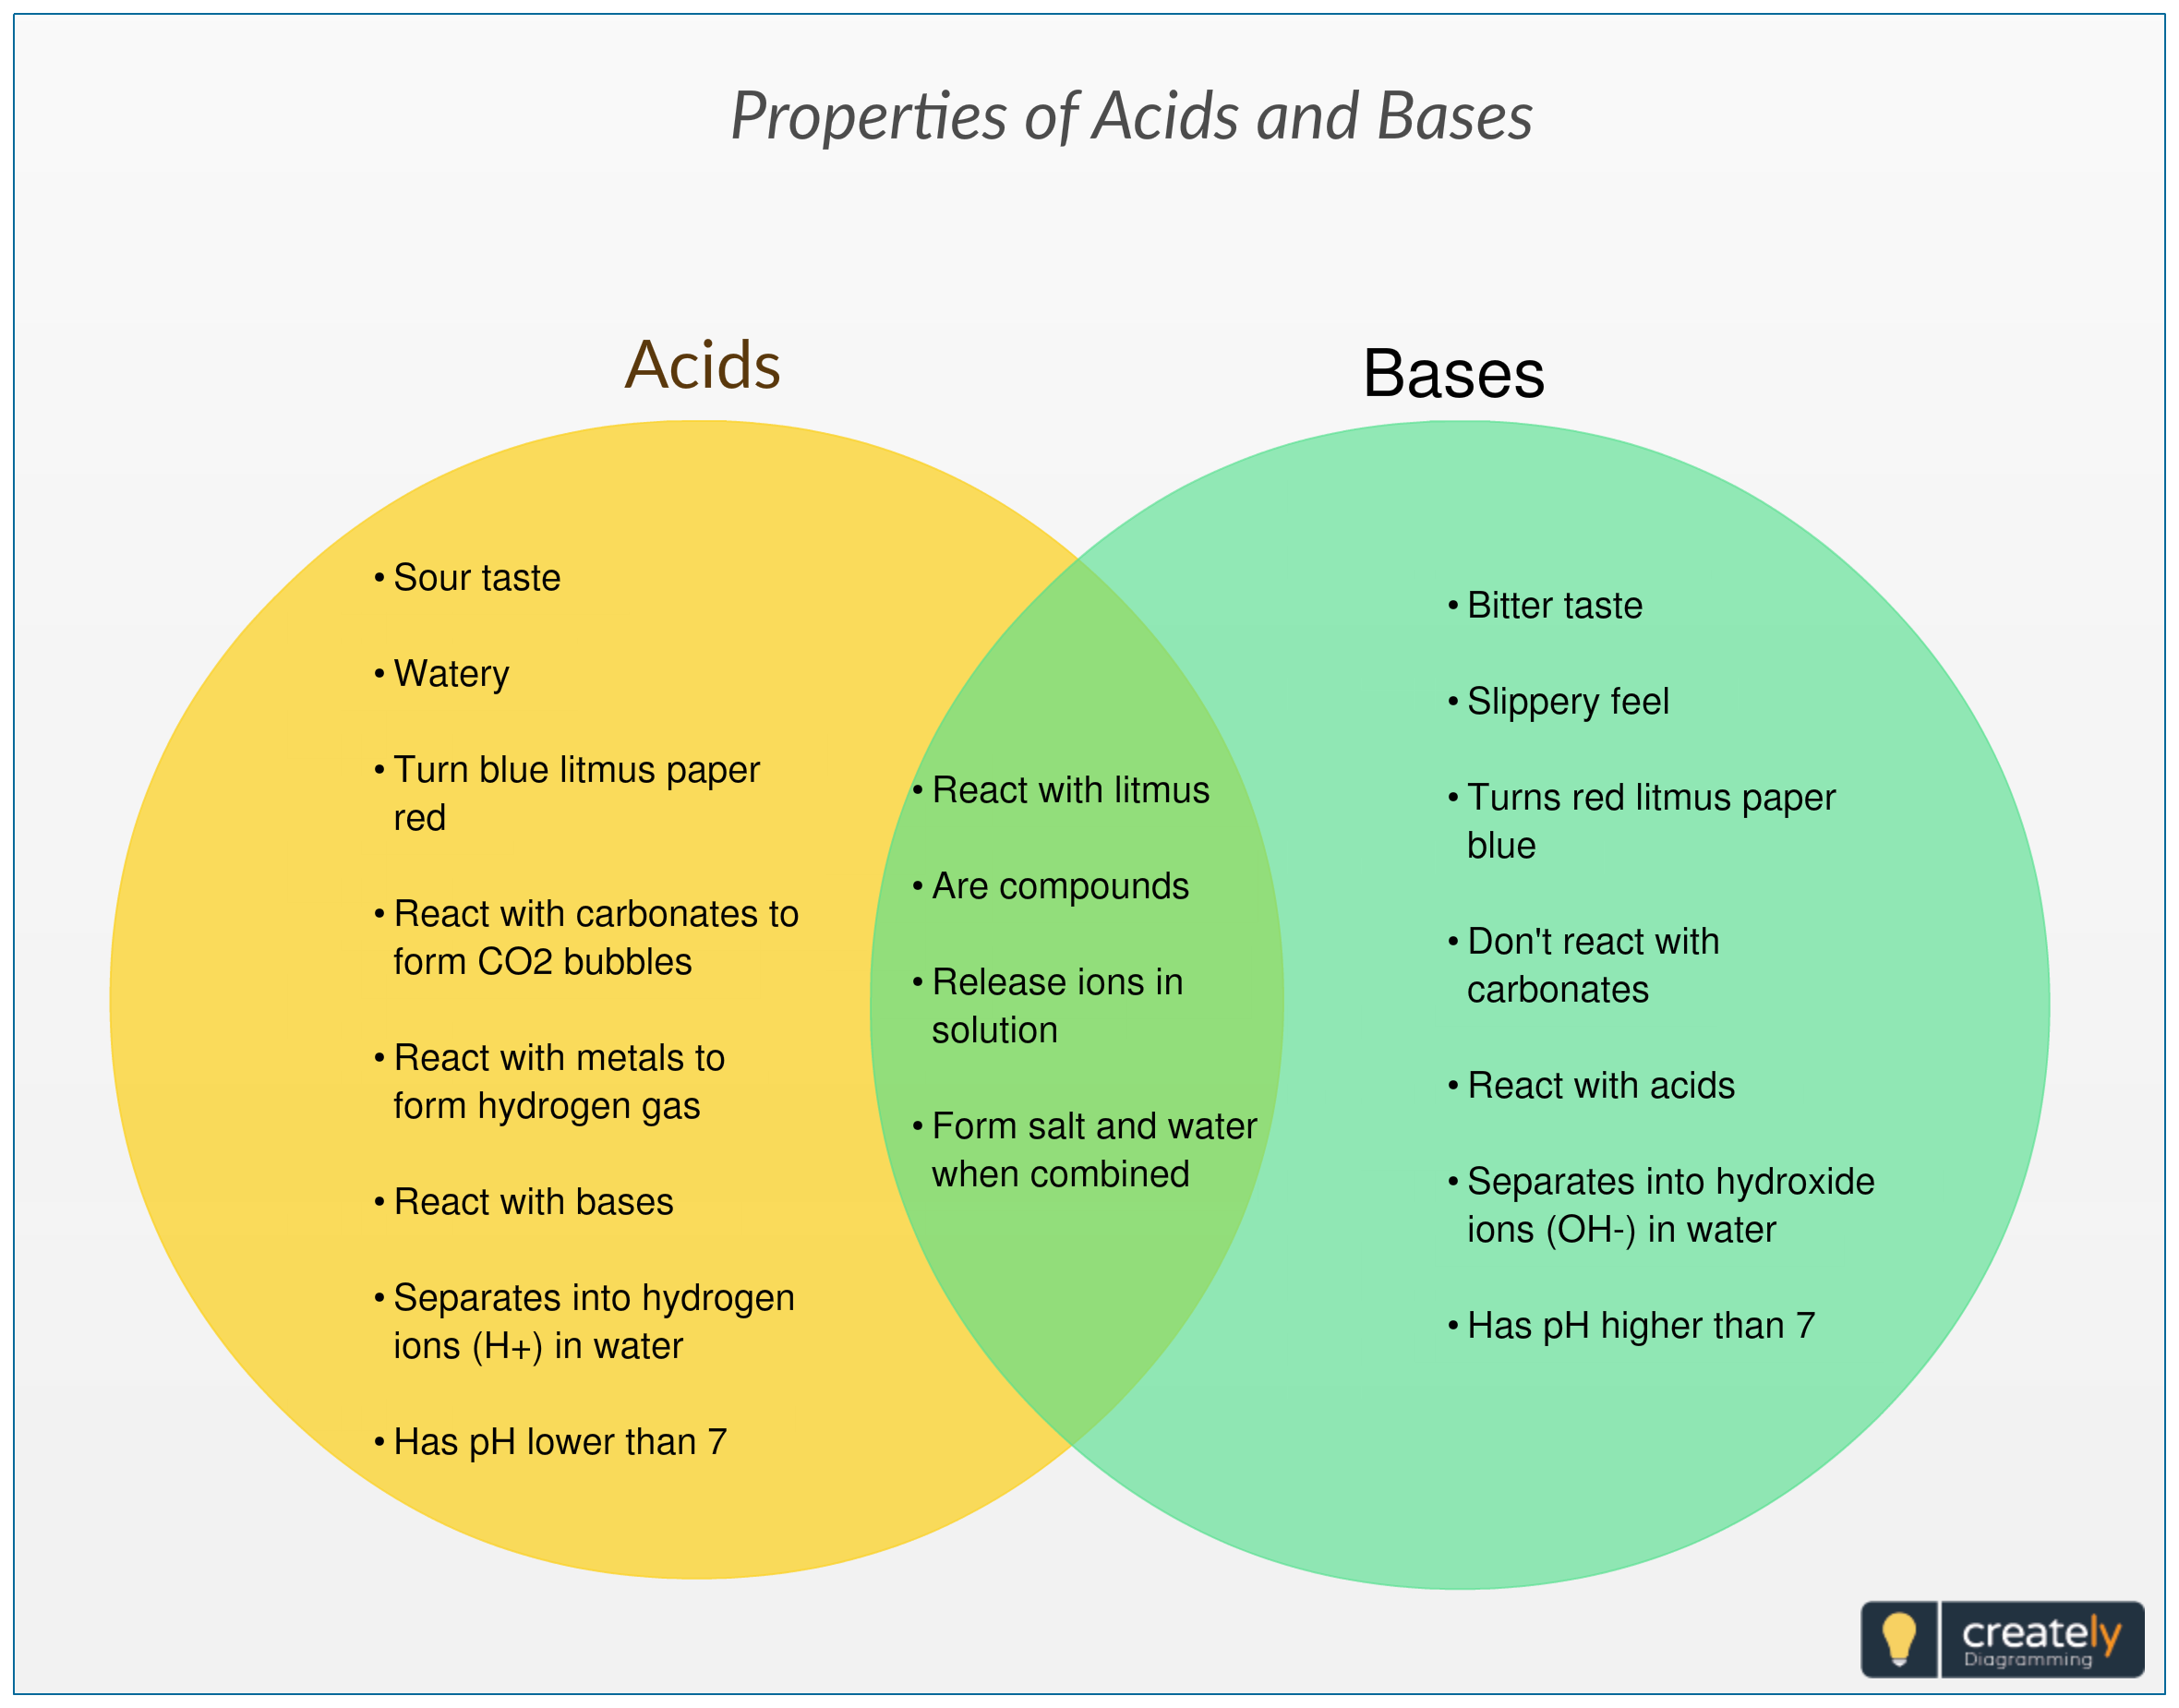 a venn diagram can be used to compare and contrast nucleic acids